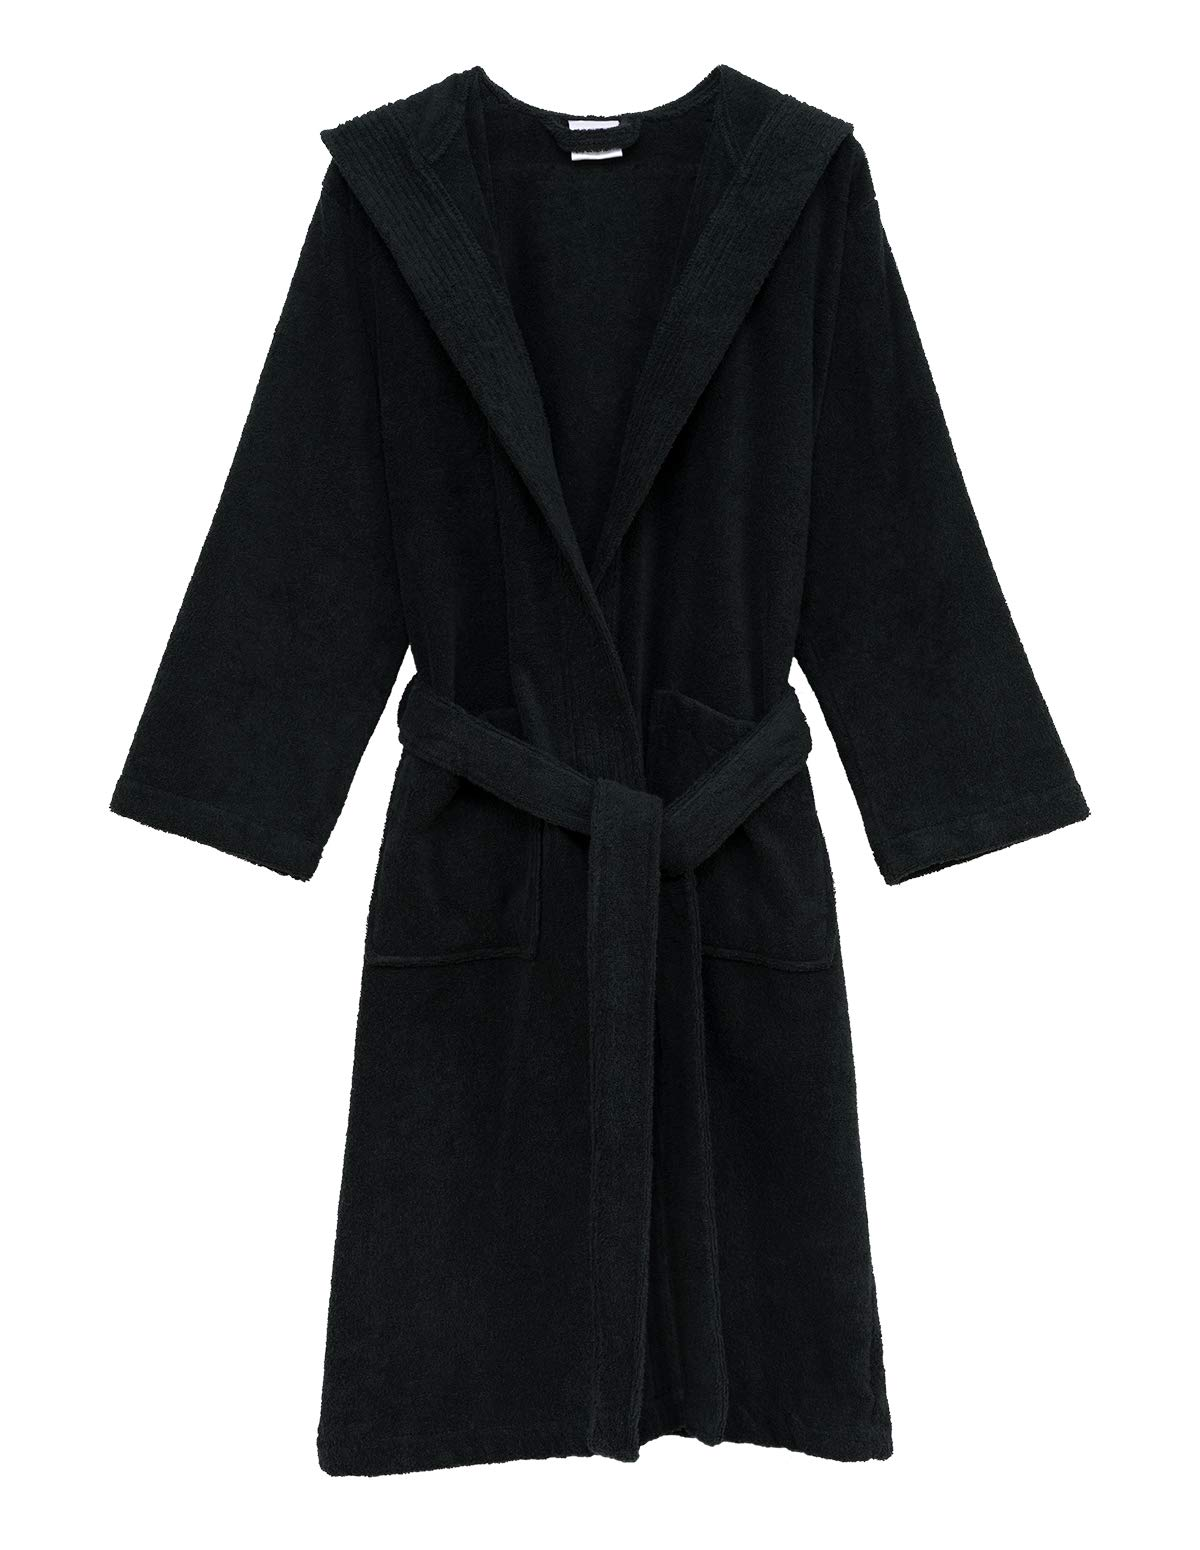 TowelSelections Men's Robe, Turkish Cotton Hooded Terry Bathrobe Large/X-Large Black